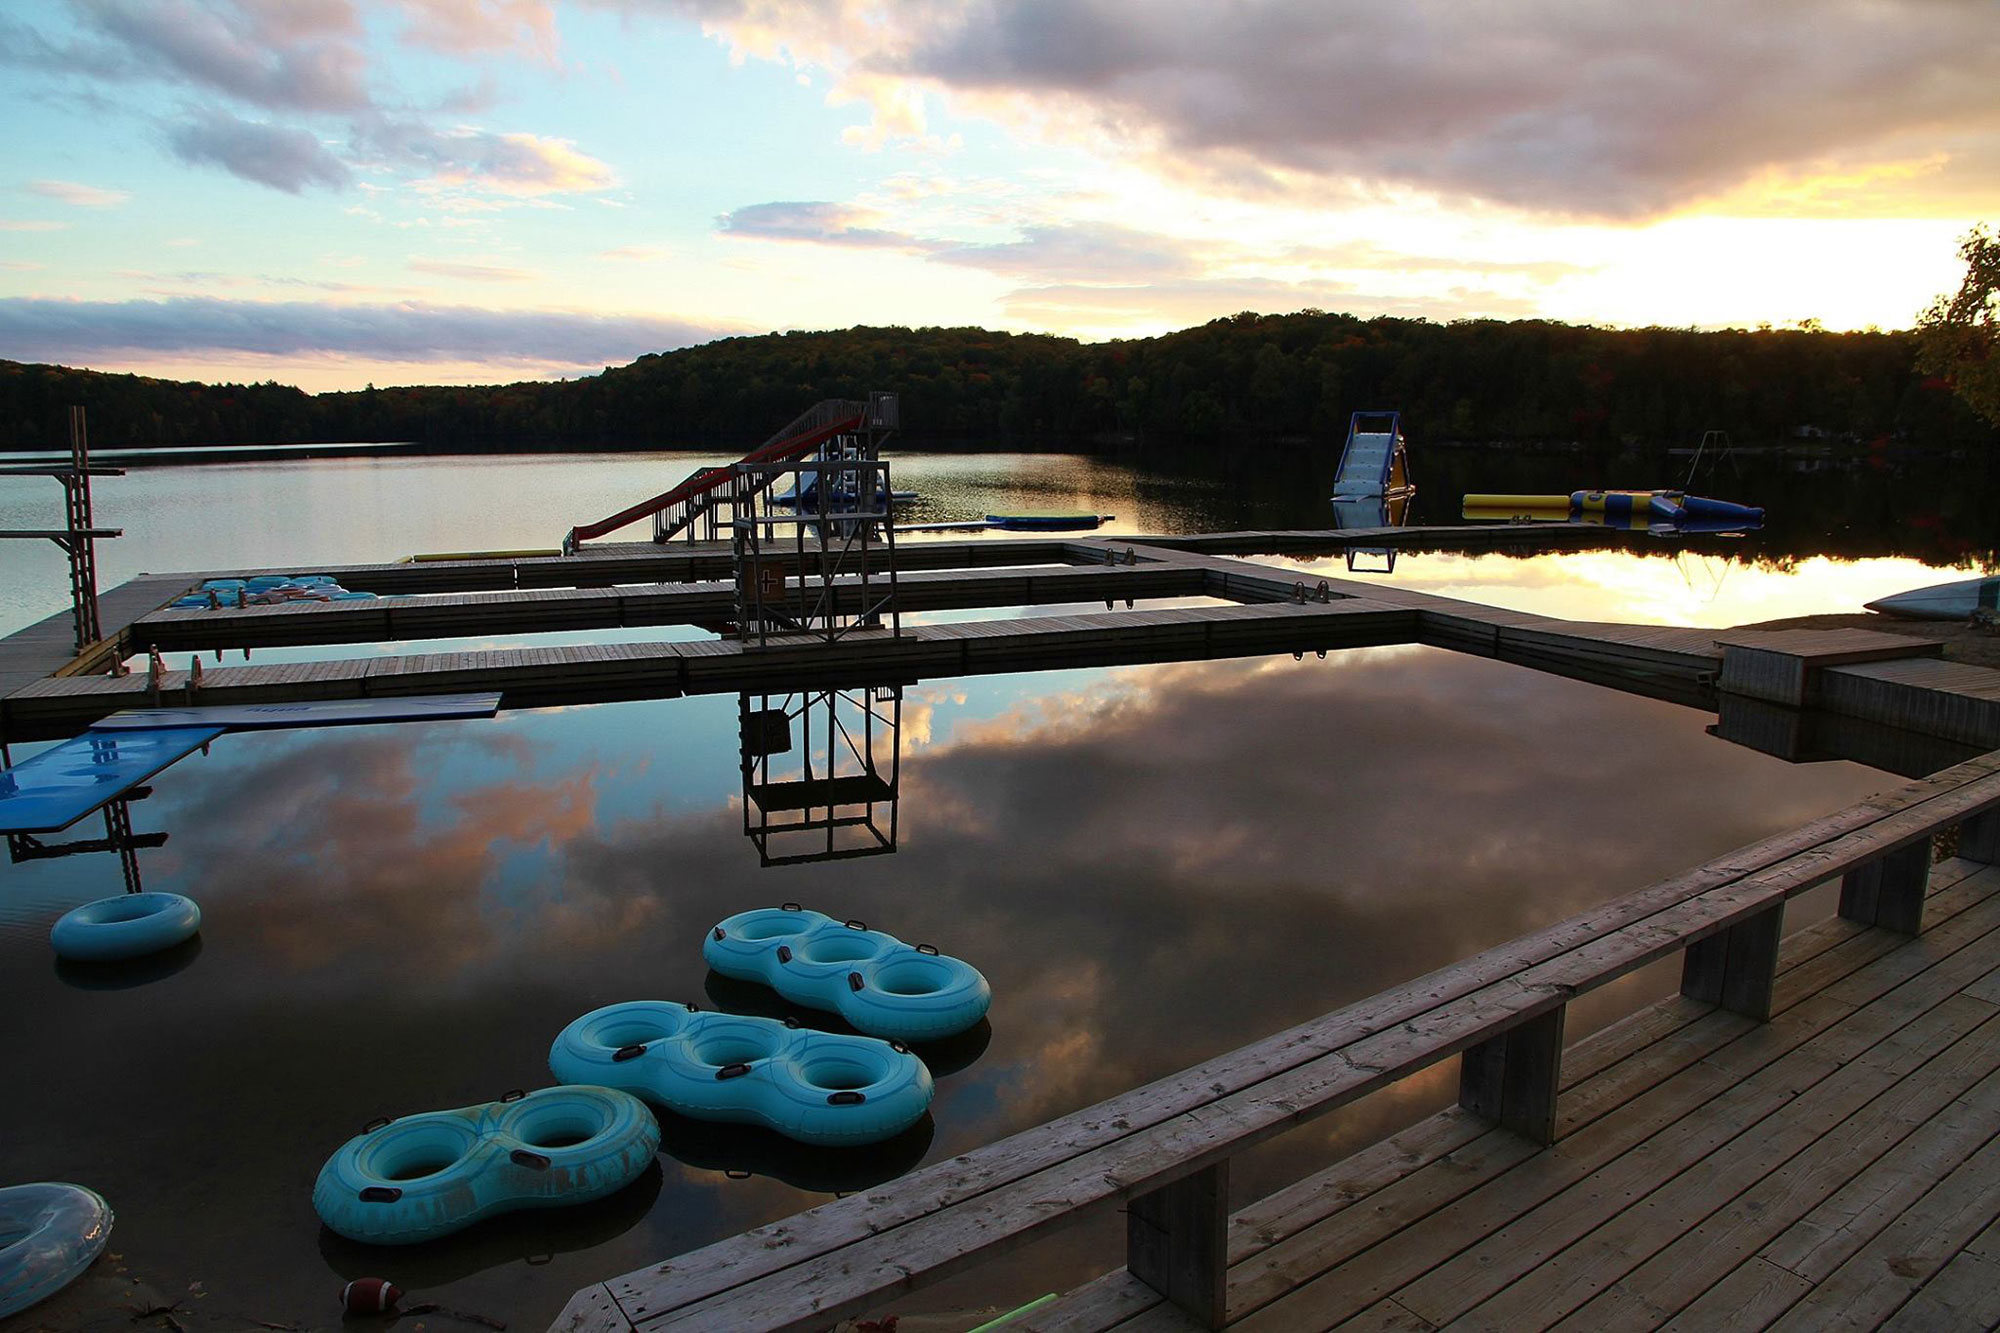 Camp Timberlane Dock at sunset with inner tubes and water slides in the water